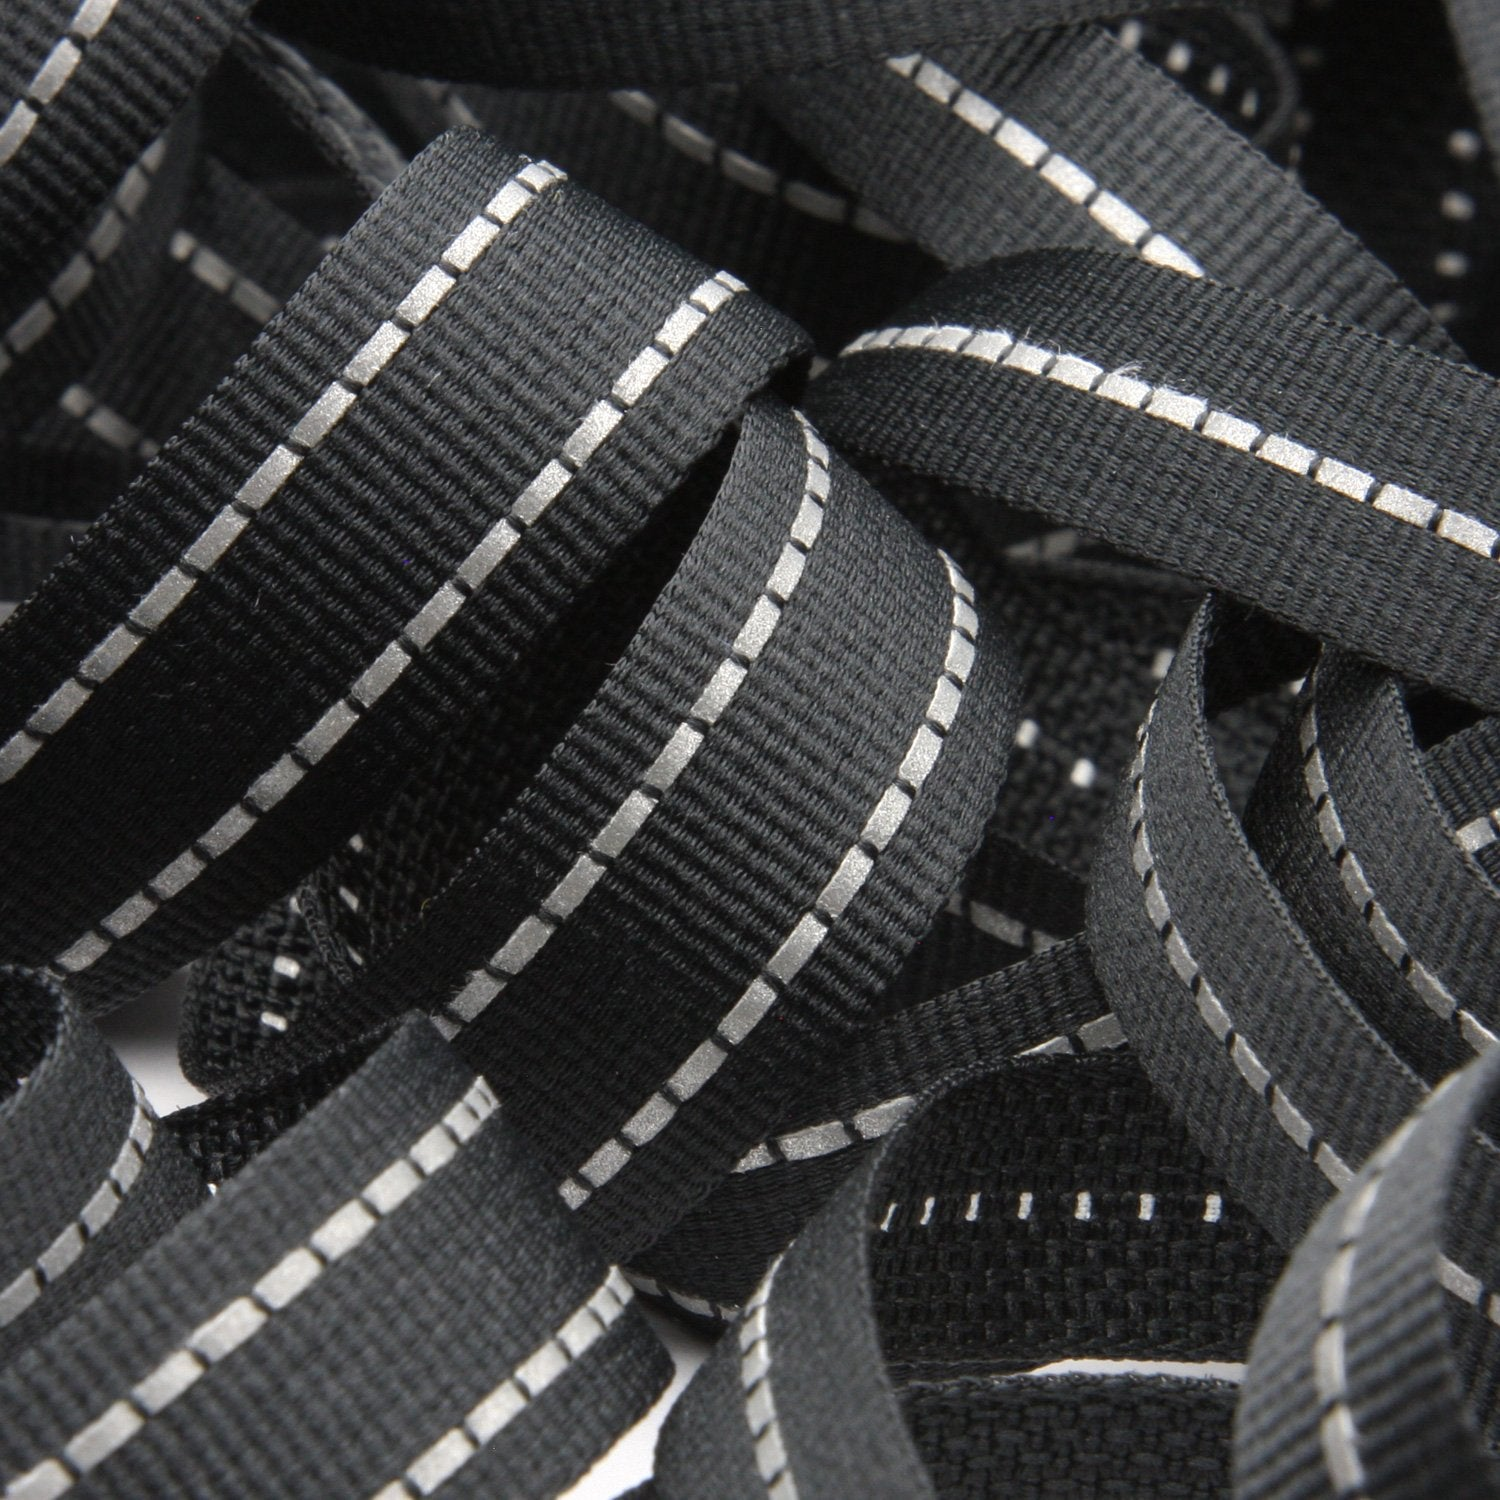 FUJIYAMA RIBBON [Wholesale] Double Stitched Reflect Weave Tape 15mm Black 30 Meters Roll